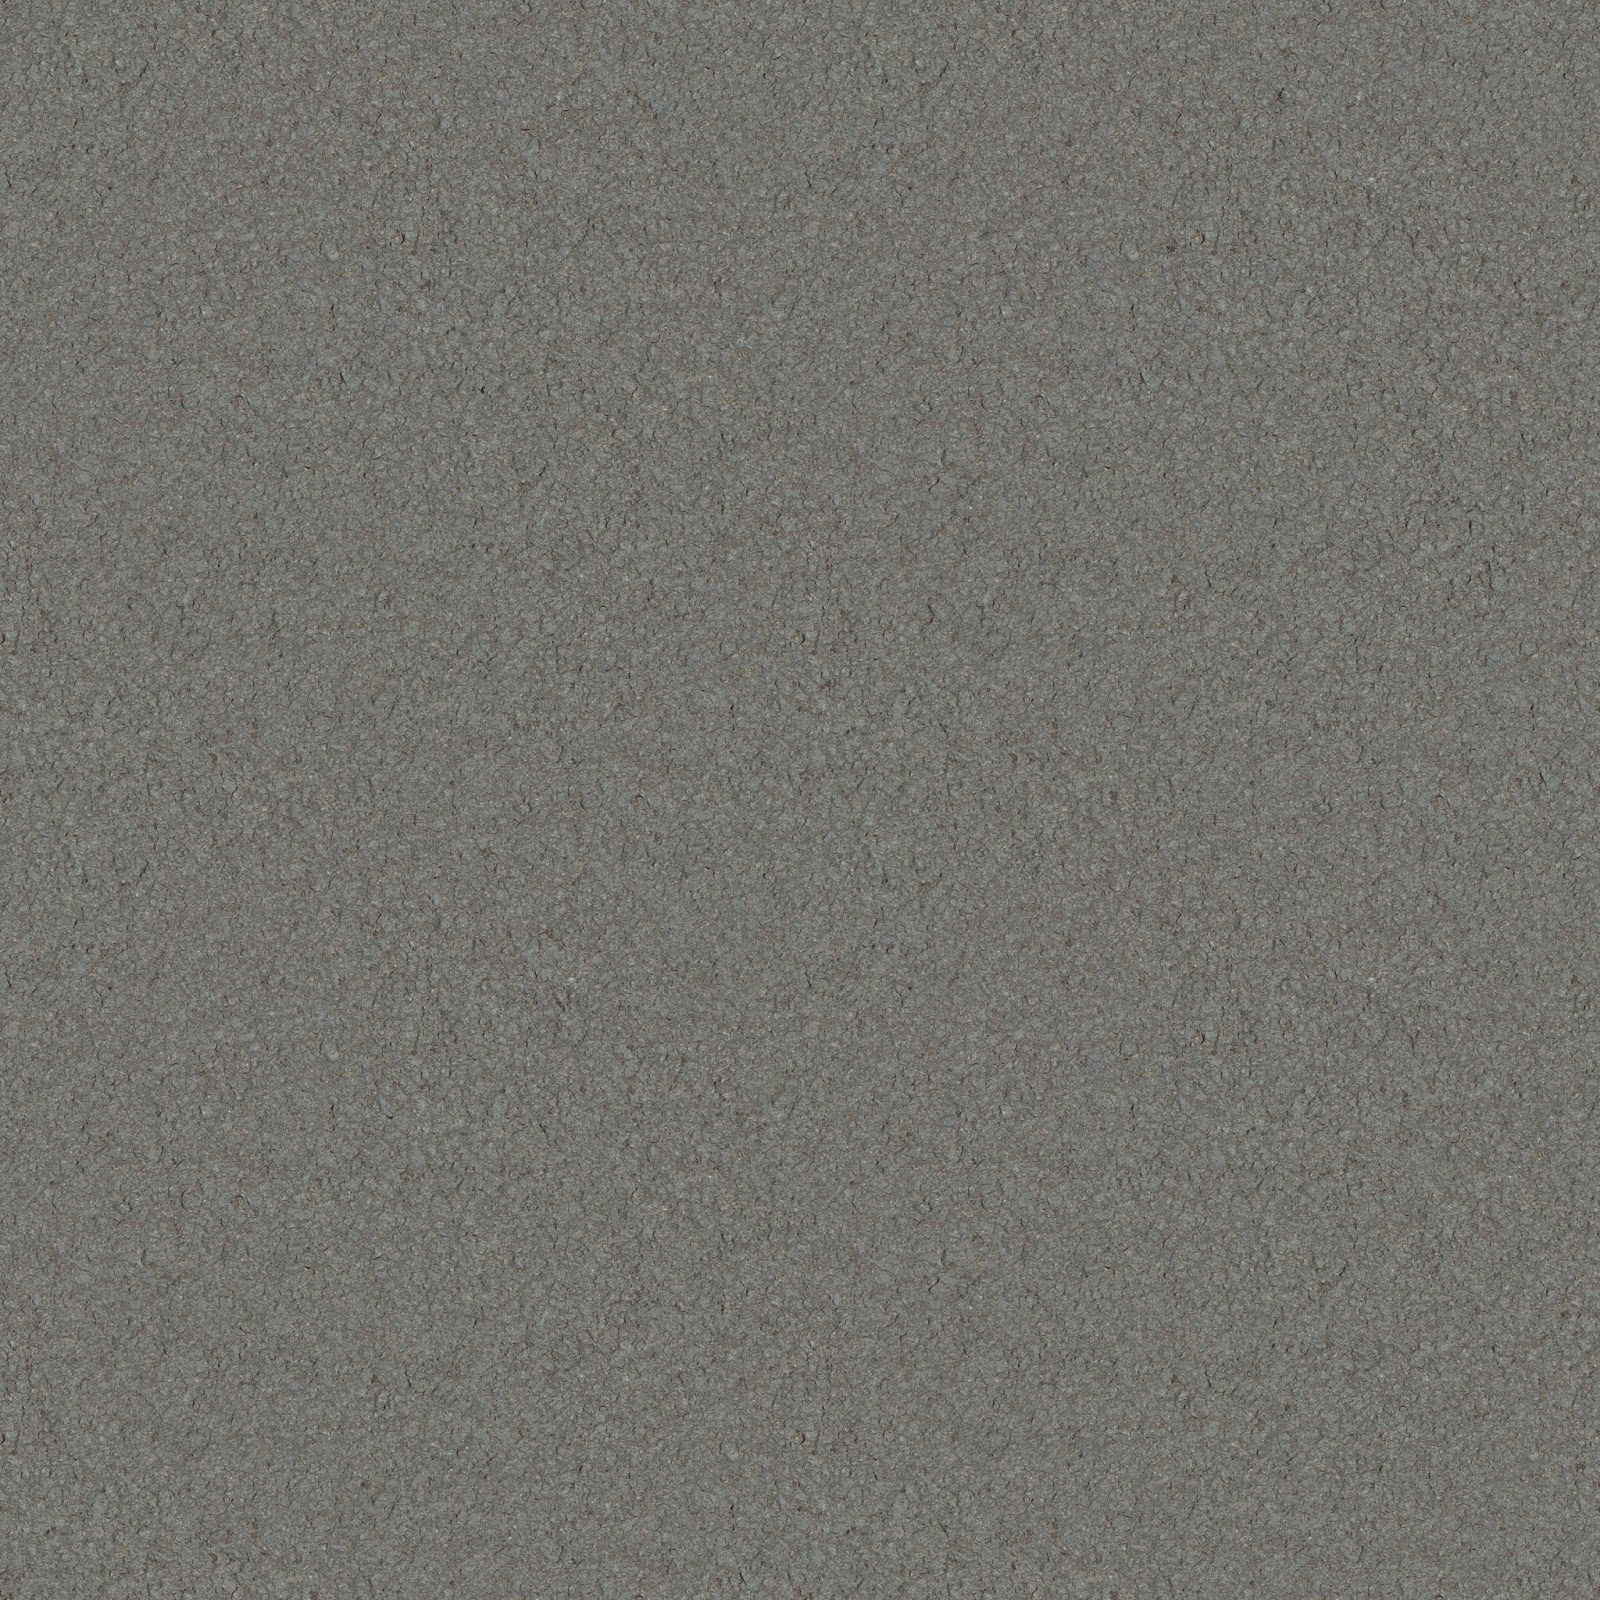 Light Gray Tile With Texture : High resolution seamless textures road light grey